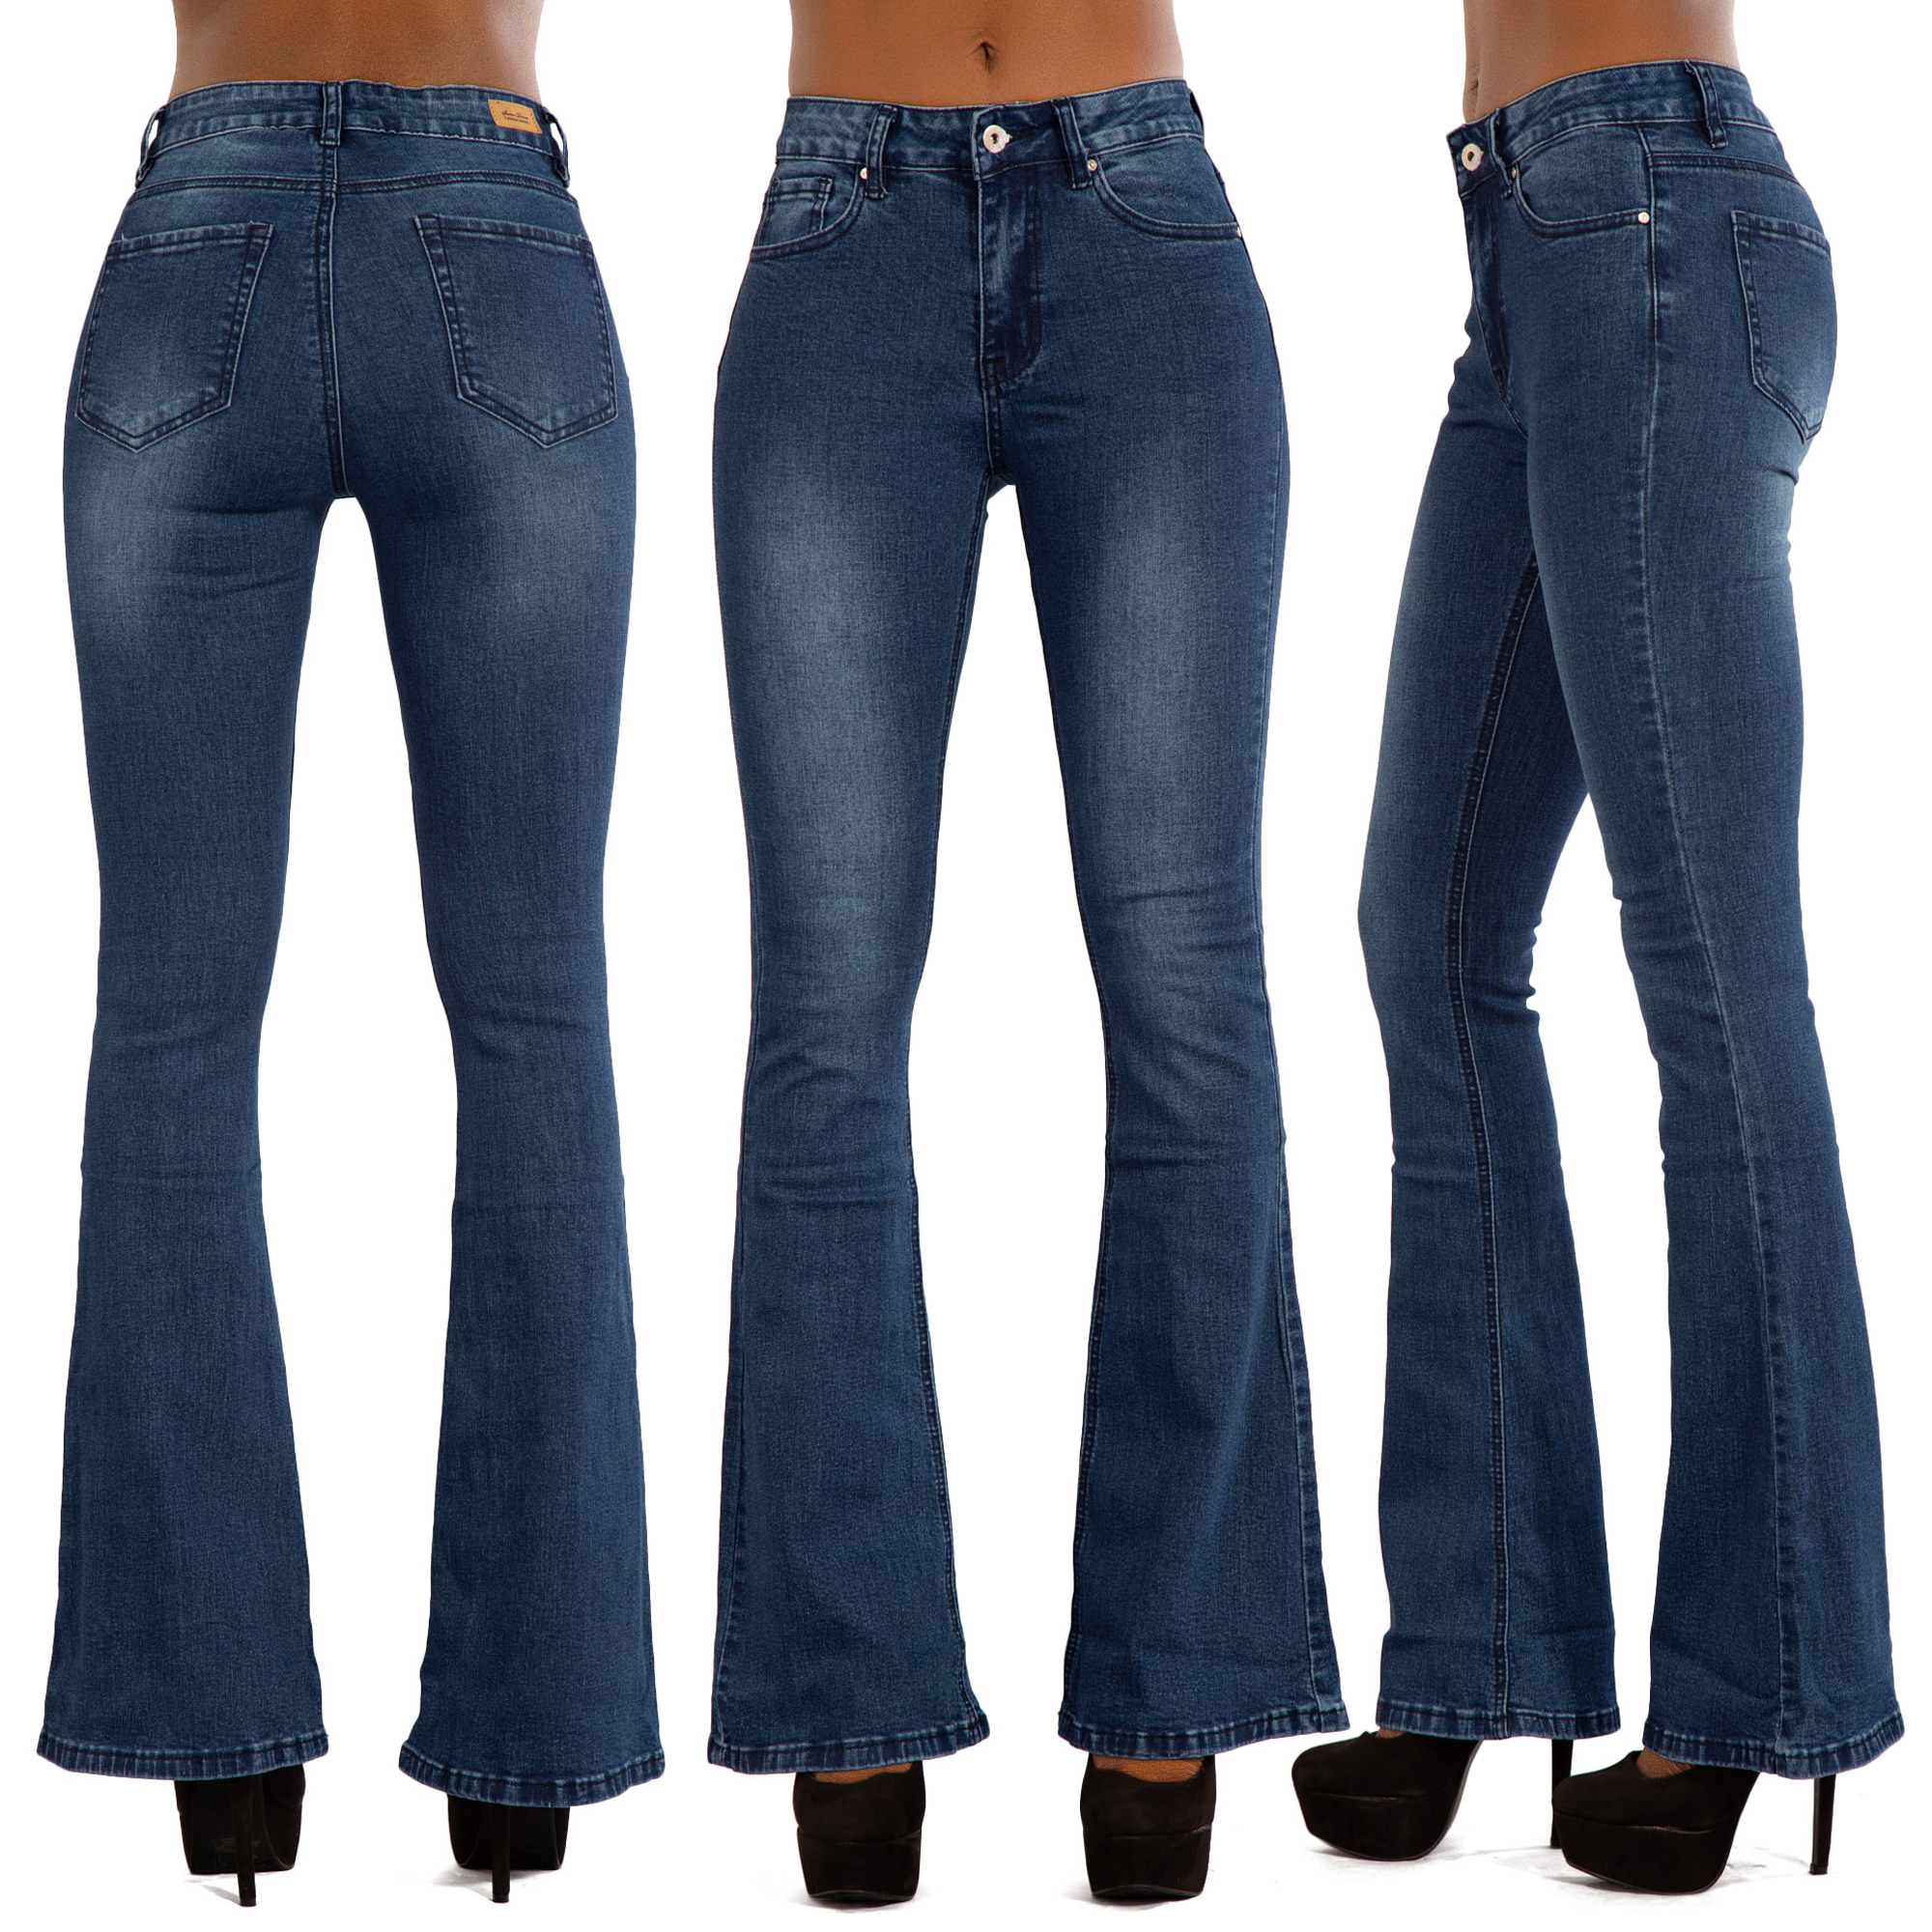 Details about Womens Flare Jeans Ladies Blue Bootcut Denim Bell Bottom Stretch Pants Size 6 14